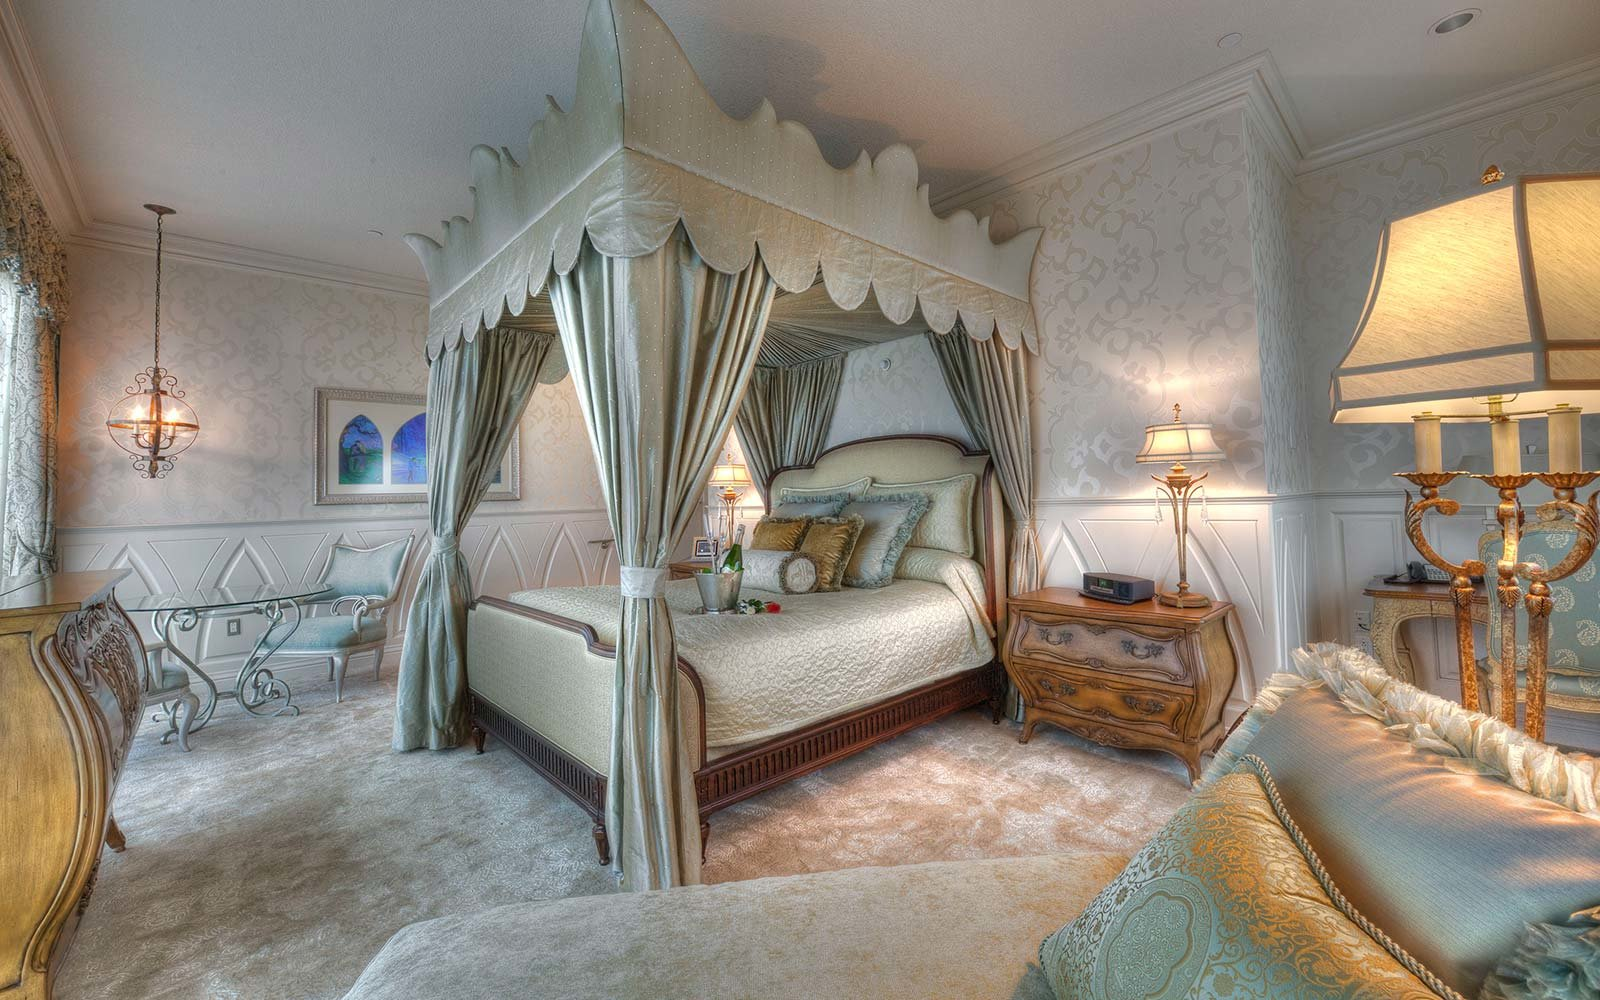 The Most Unique Theme Park Hotel Rooms in the World | Travel ... Princess Suite House Plans on swimming pool house plans, gourmet kitchen house plans, sun room house plans, master bath house plans, master bedroom house plans, fancy bird house plans, bonus room house plans,